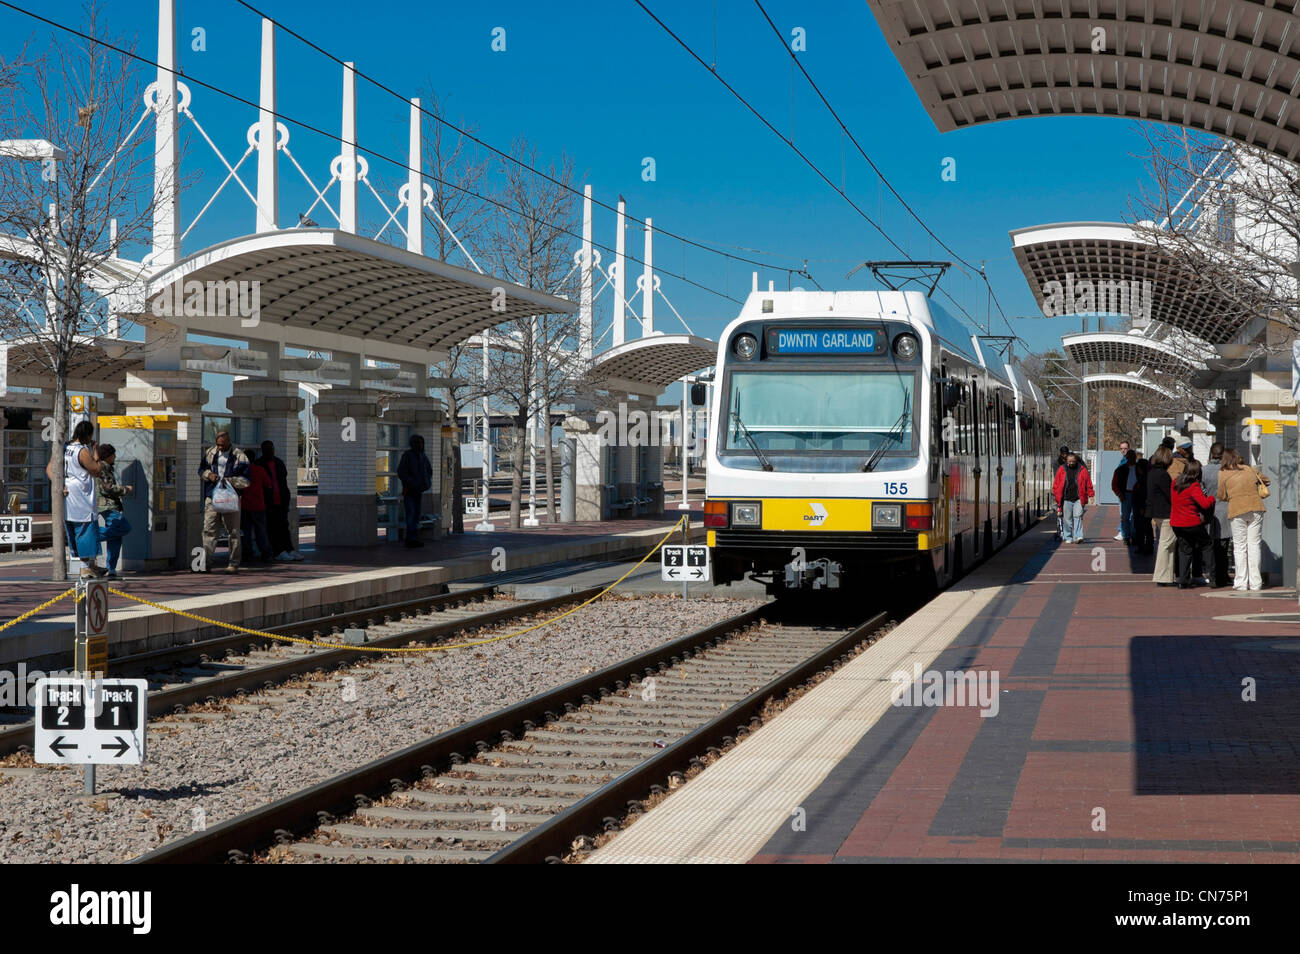 Commuters on the train station platform catching a DART train at Union Station, Dallas, Texas - Stock Image